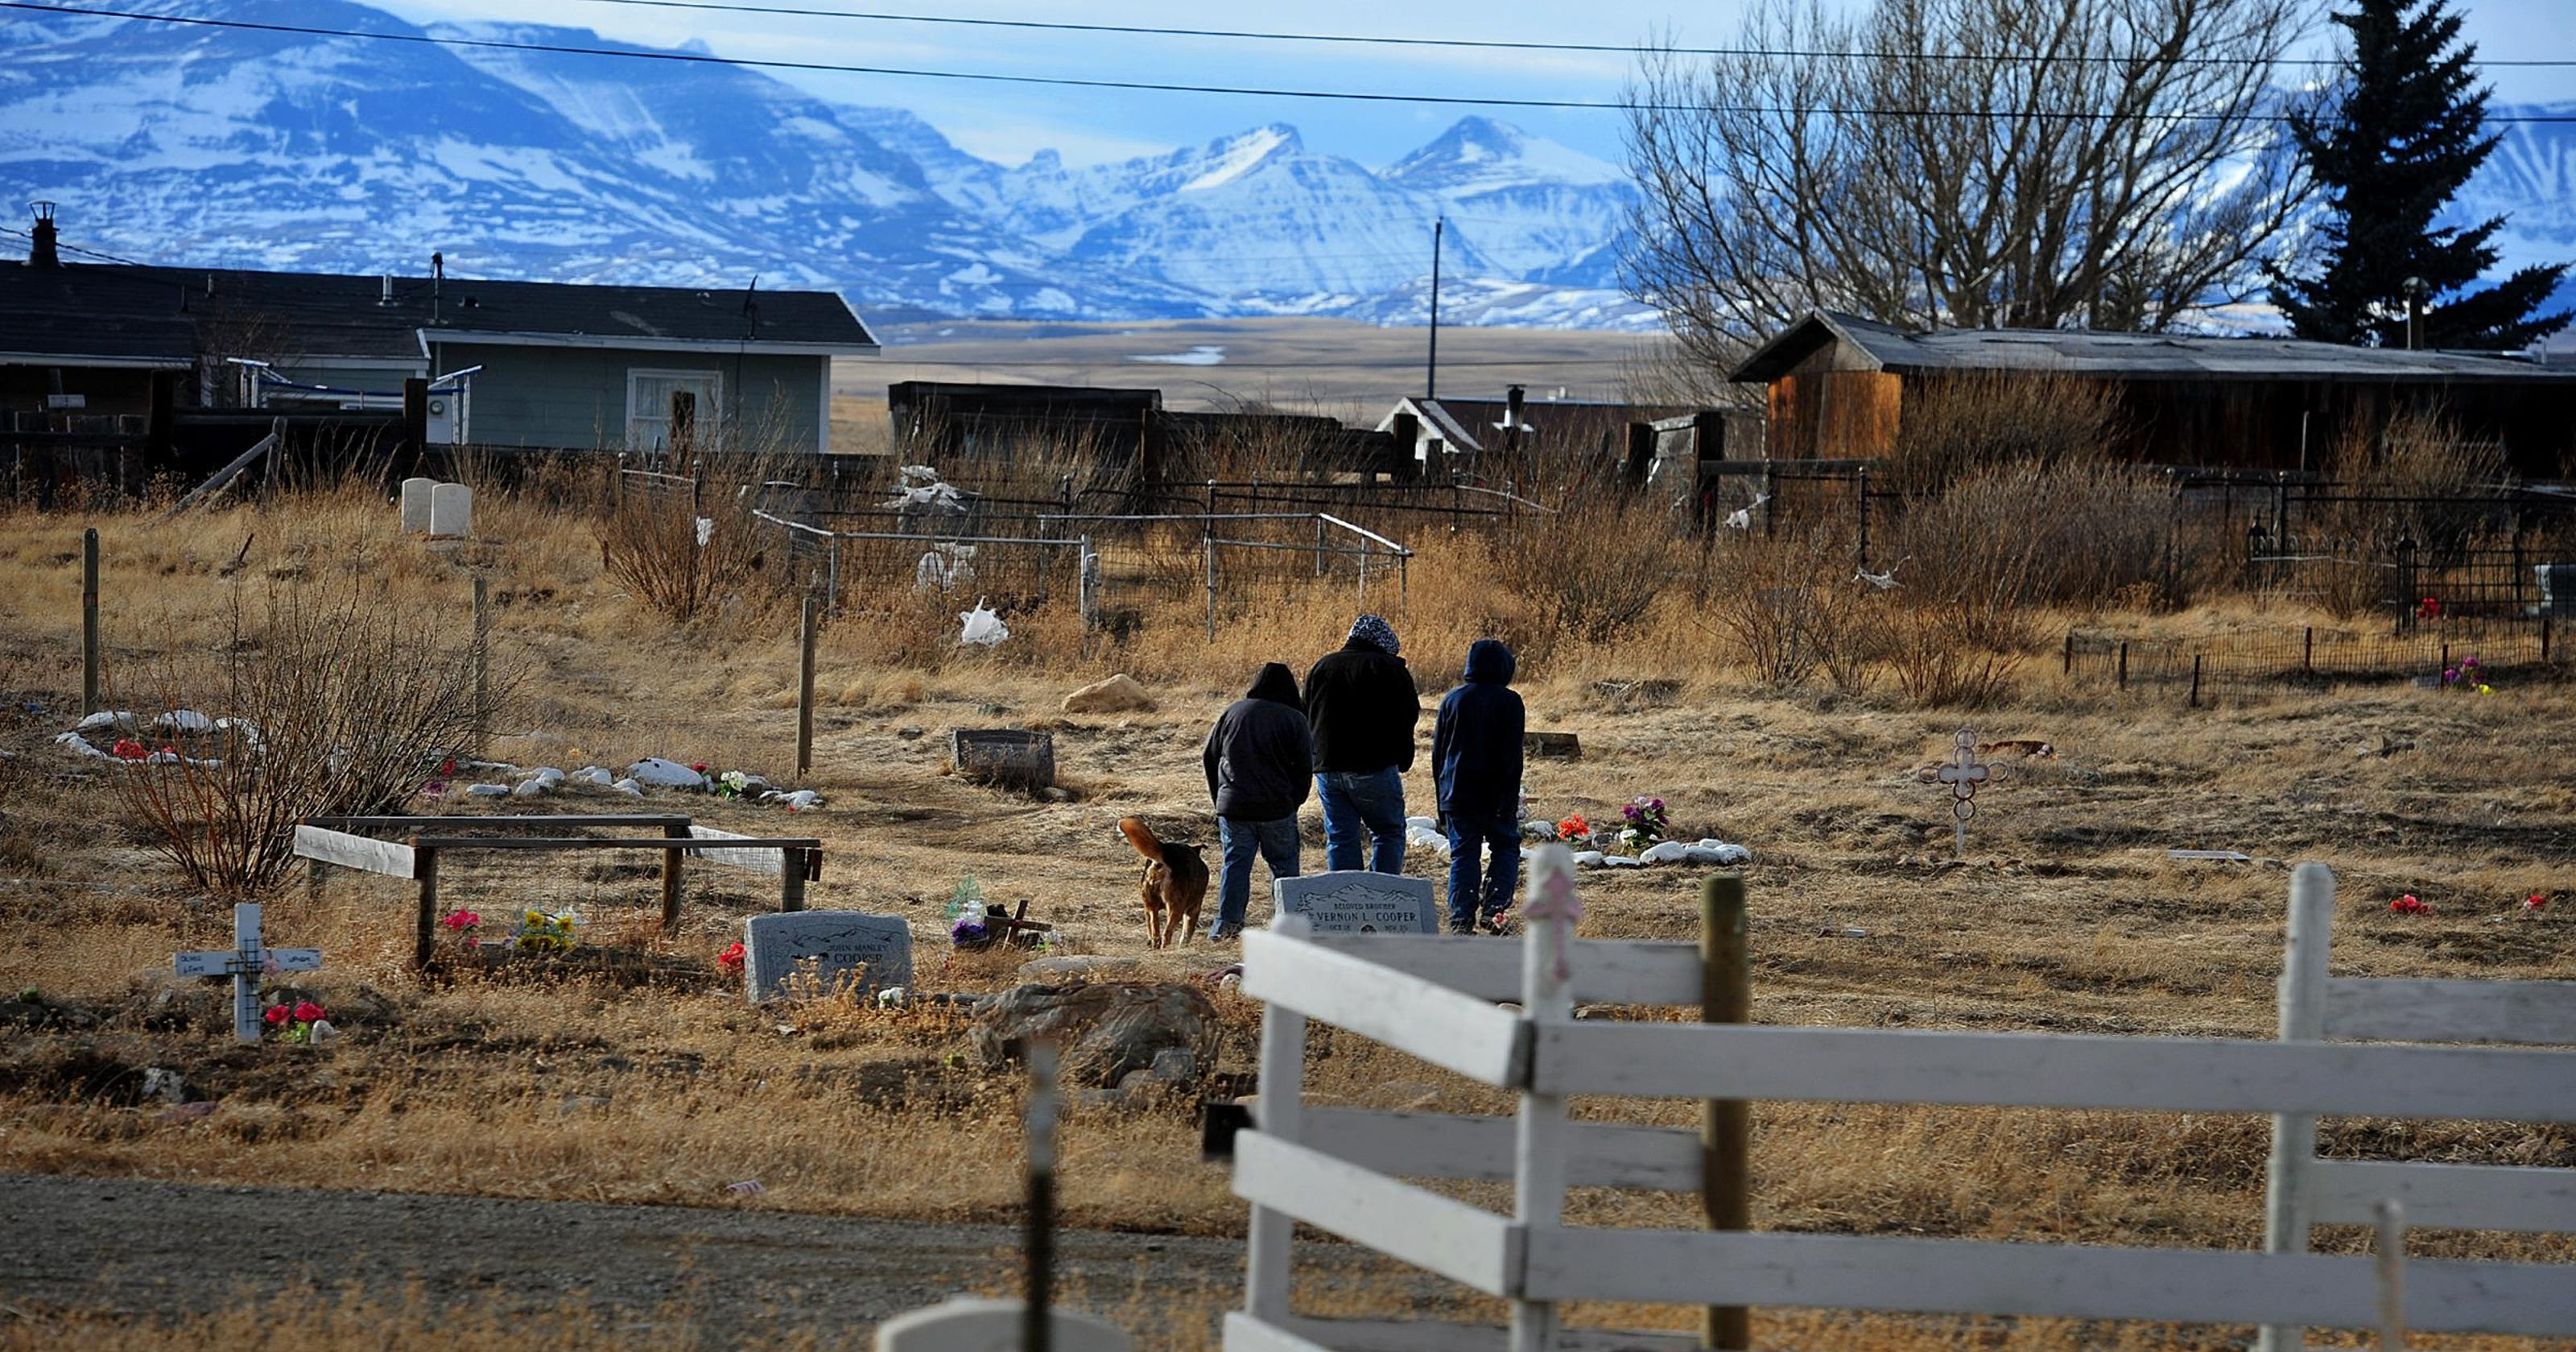 The crisis in our backyard: Montana's reservation housing